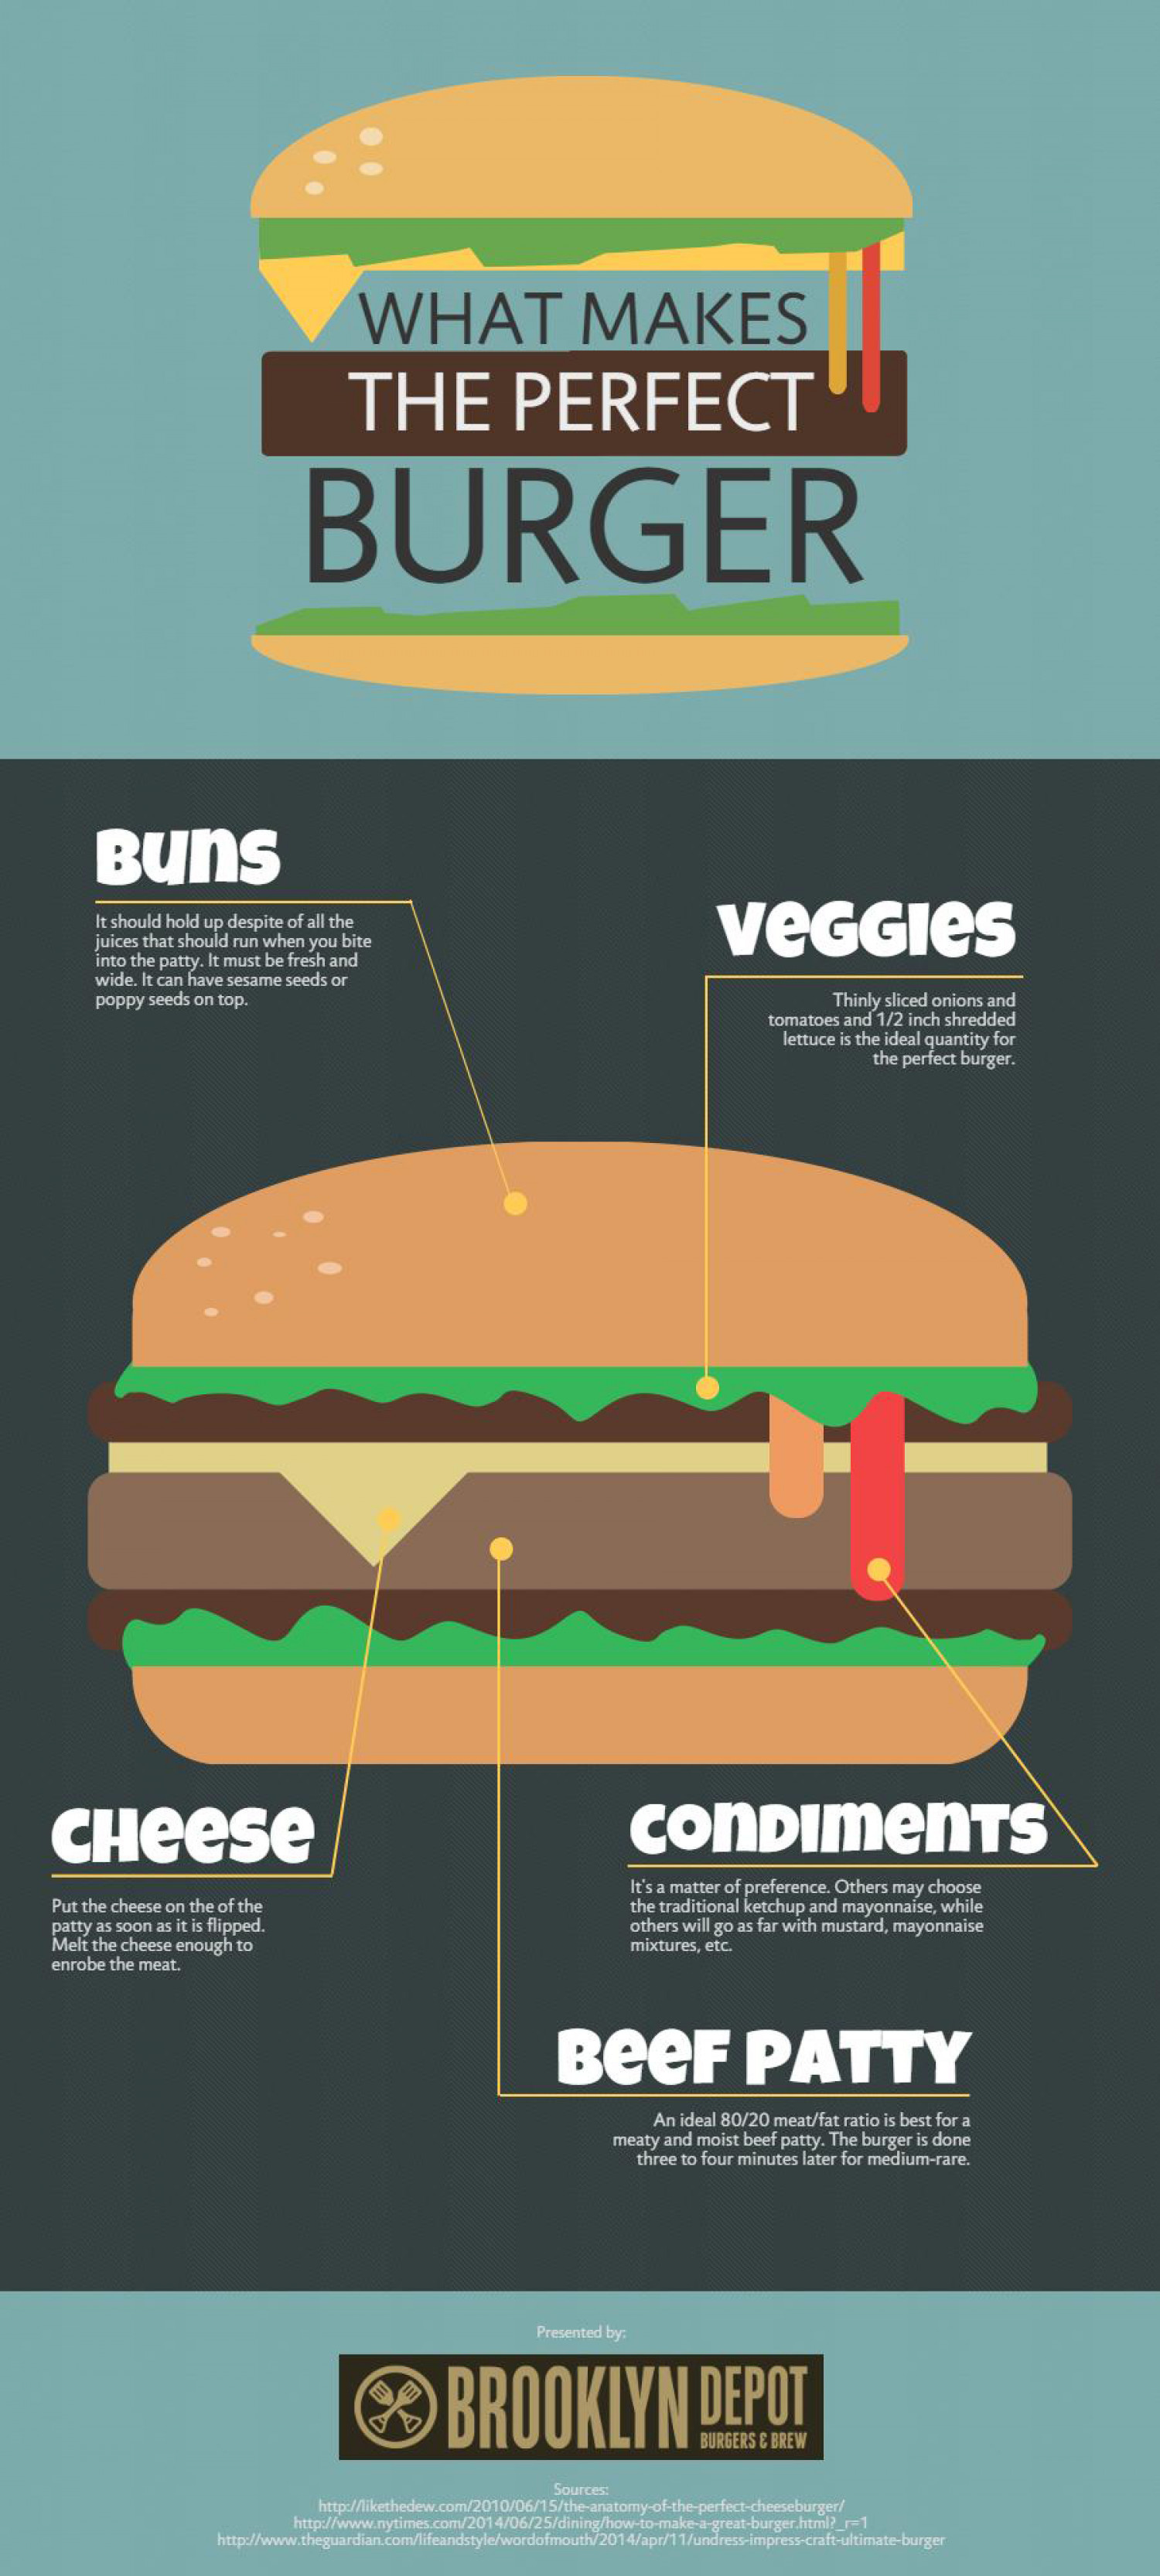 What Makes The Perfect Burger Infographic